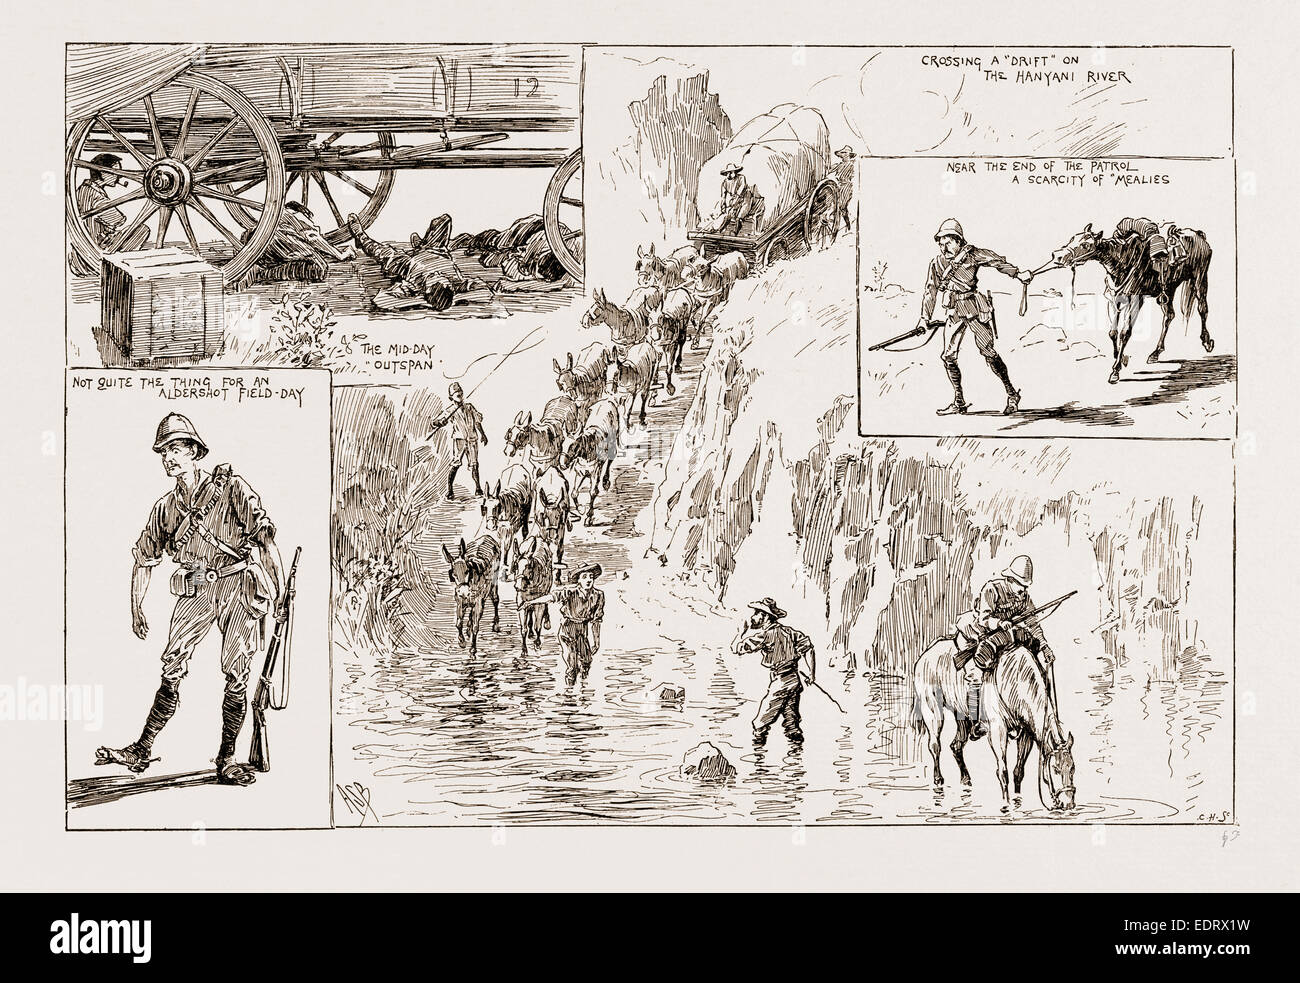 TOMMY ATKINS IN RHODESIA: LEAVES FROM AN OFFICER'S SKETCH BOOK, 1897; THE MID DAY OUTSPAN; CROSSING A 'DRIFT' - Stock Image